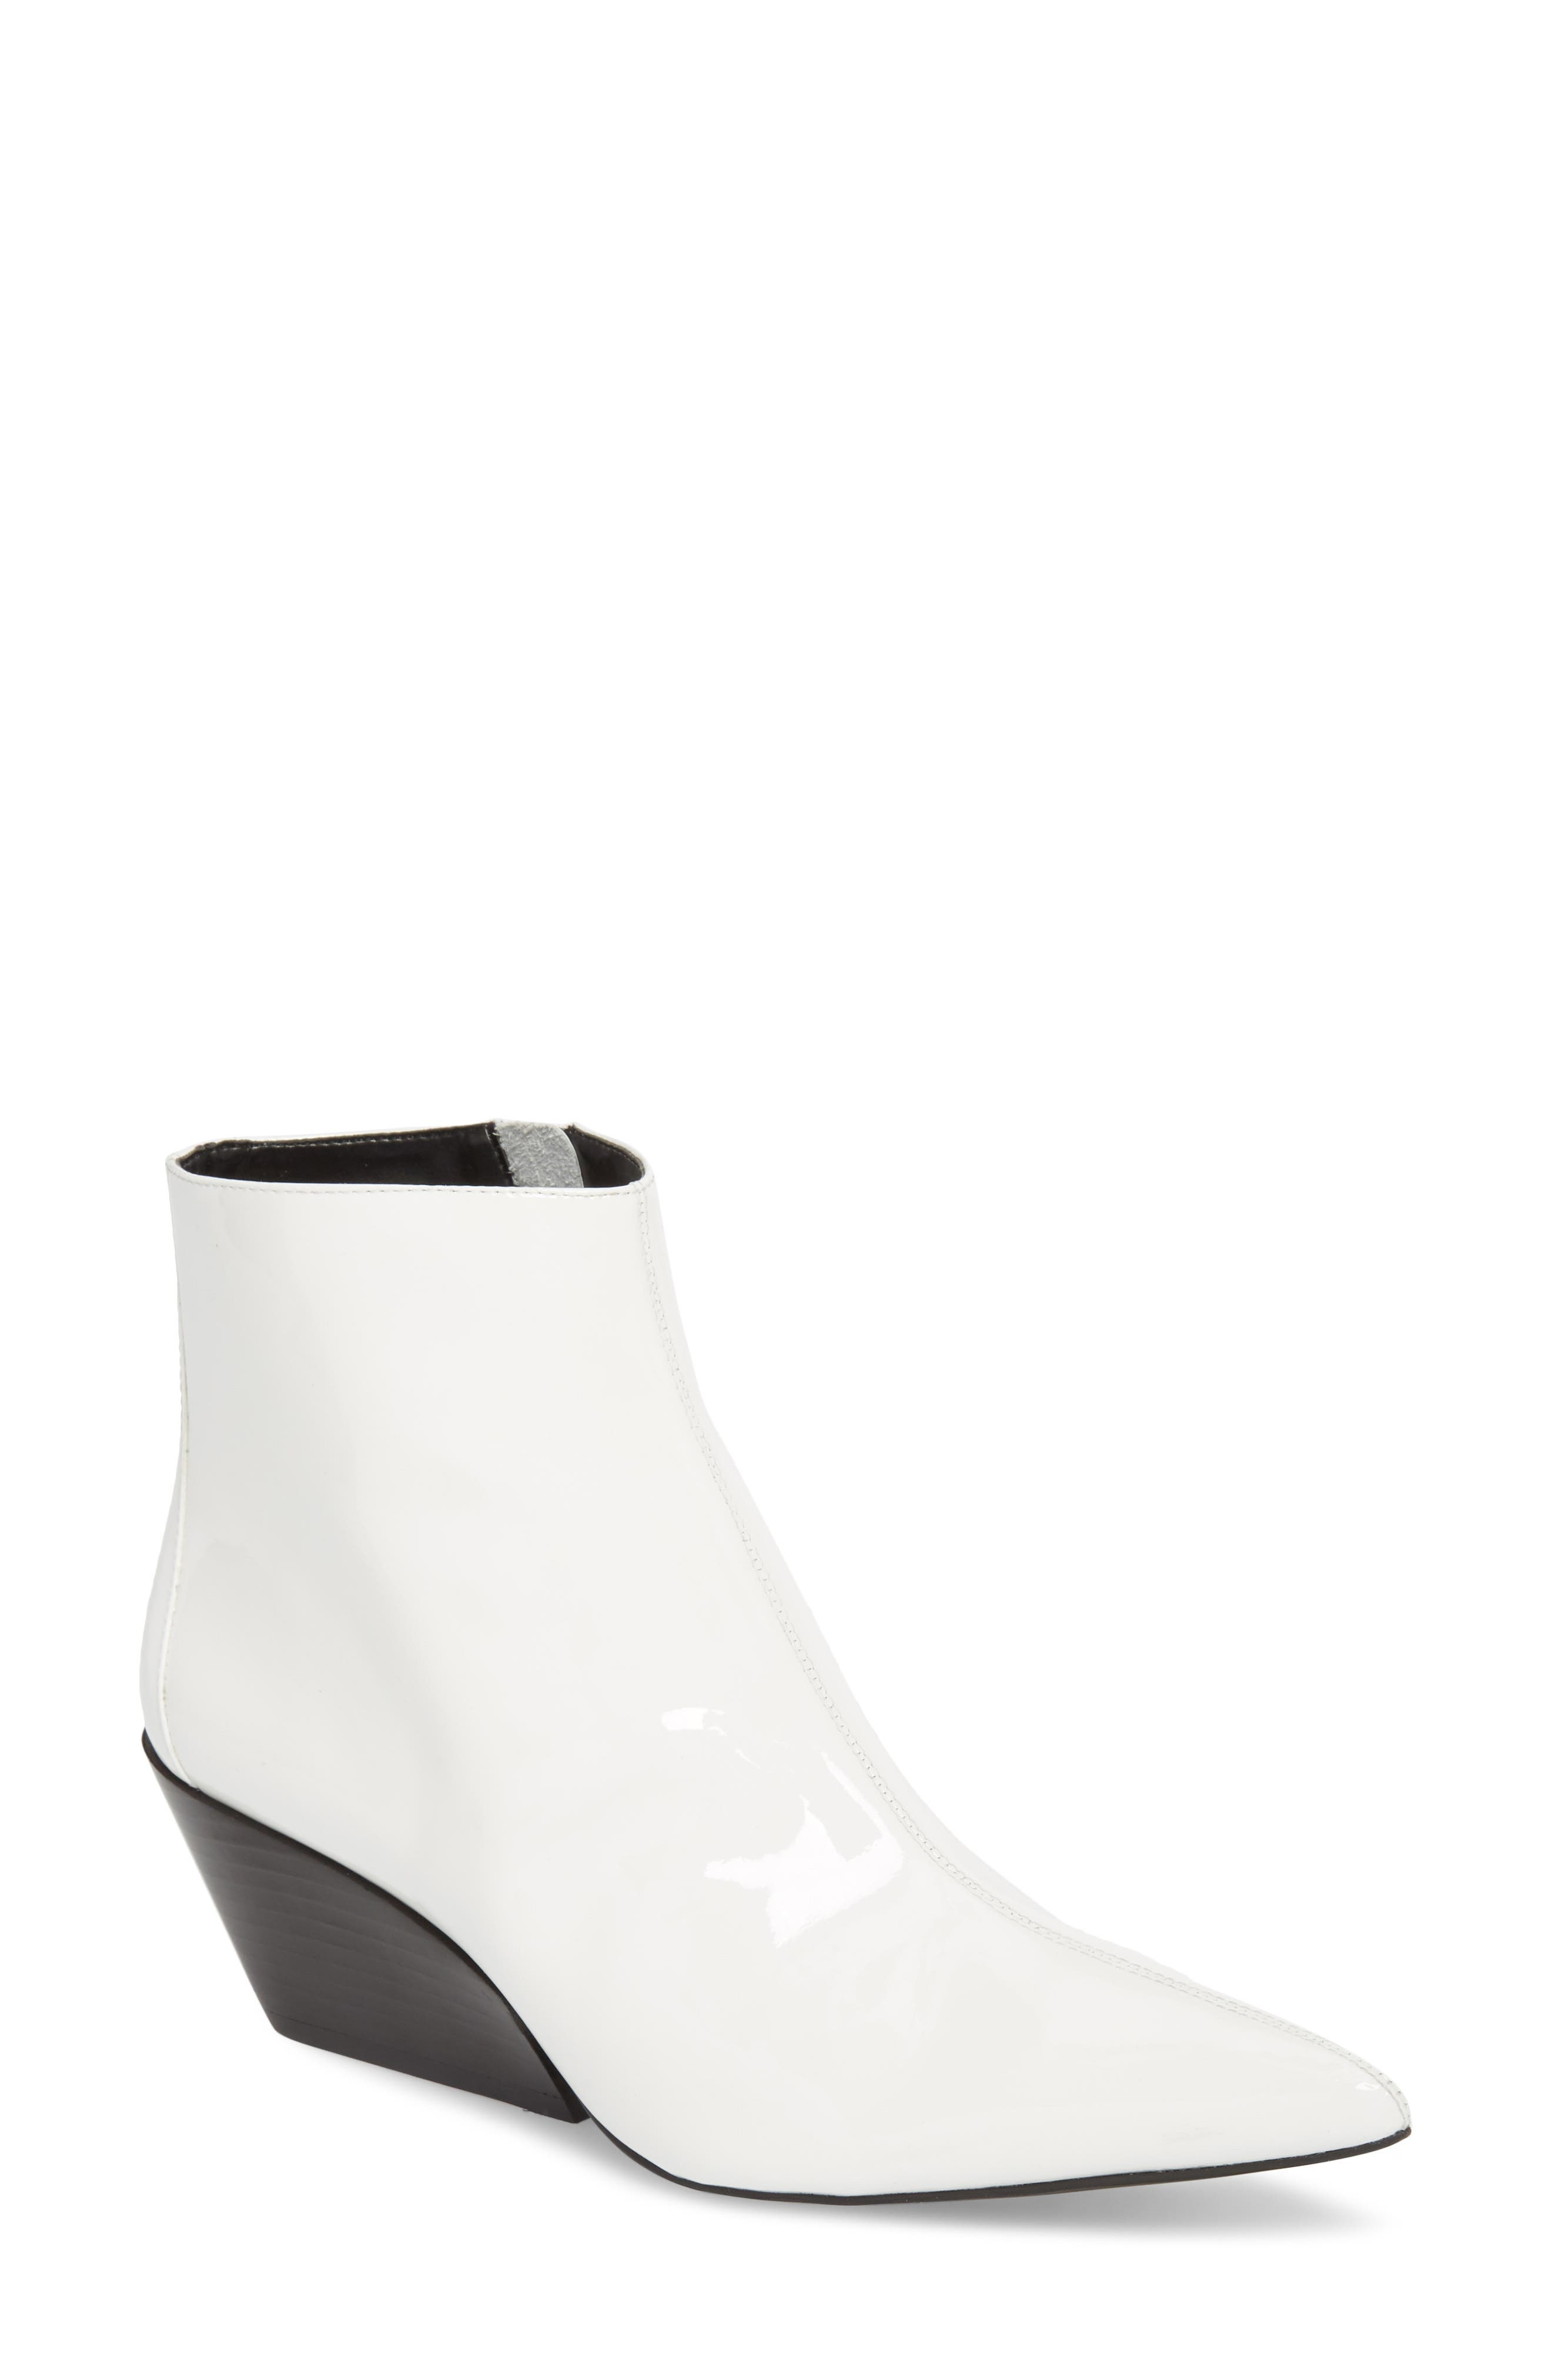 Freda Pointy Toe Bootie,                             Main thumbnail 1, color,                             White Patent